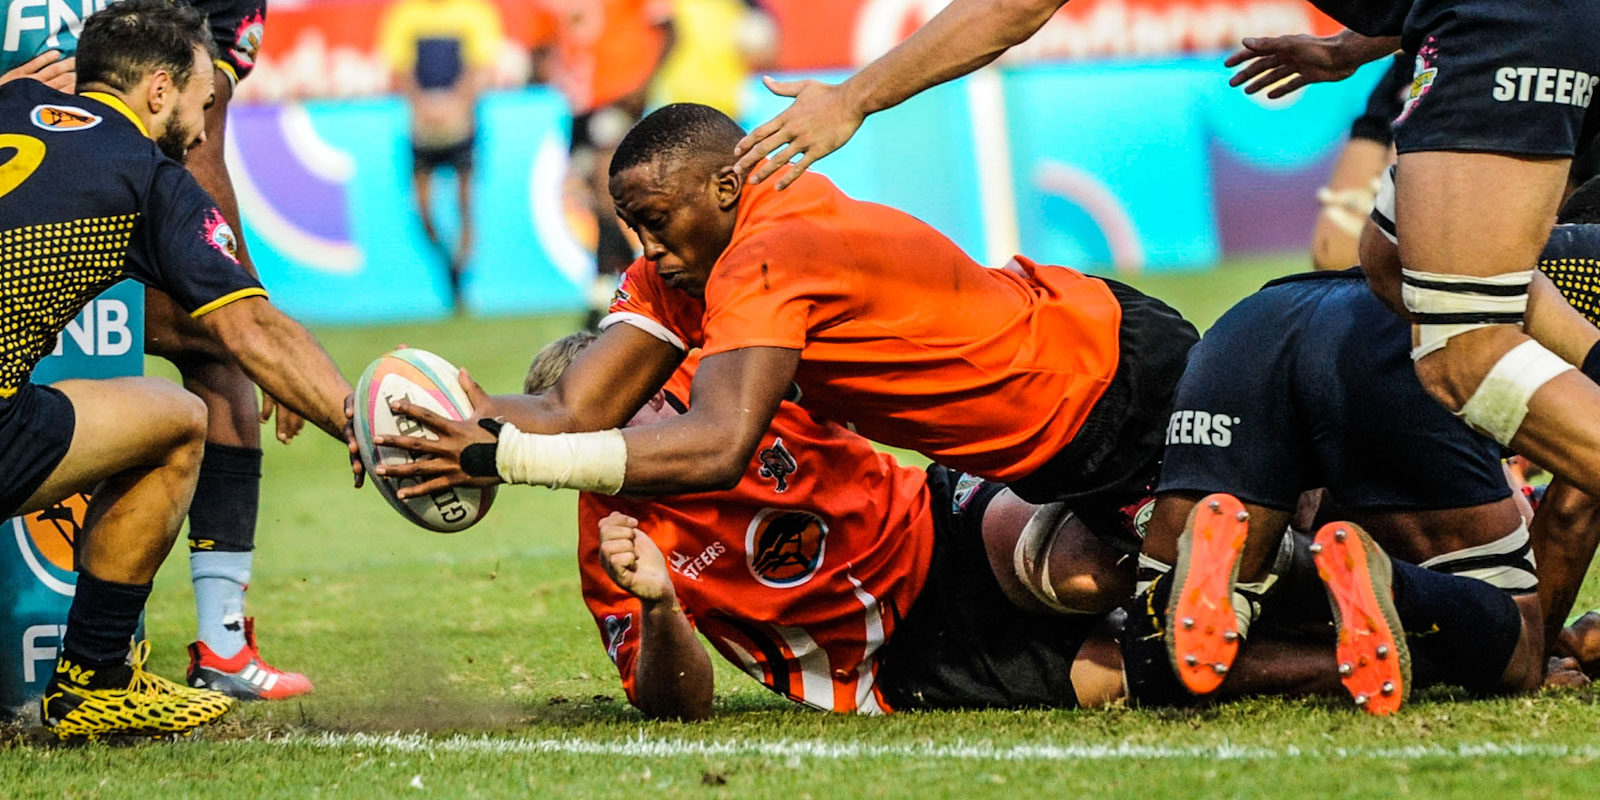 UJ broke a long losing streak with a deserved victory over the Madibaz.